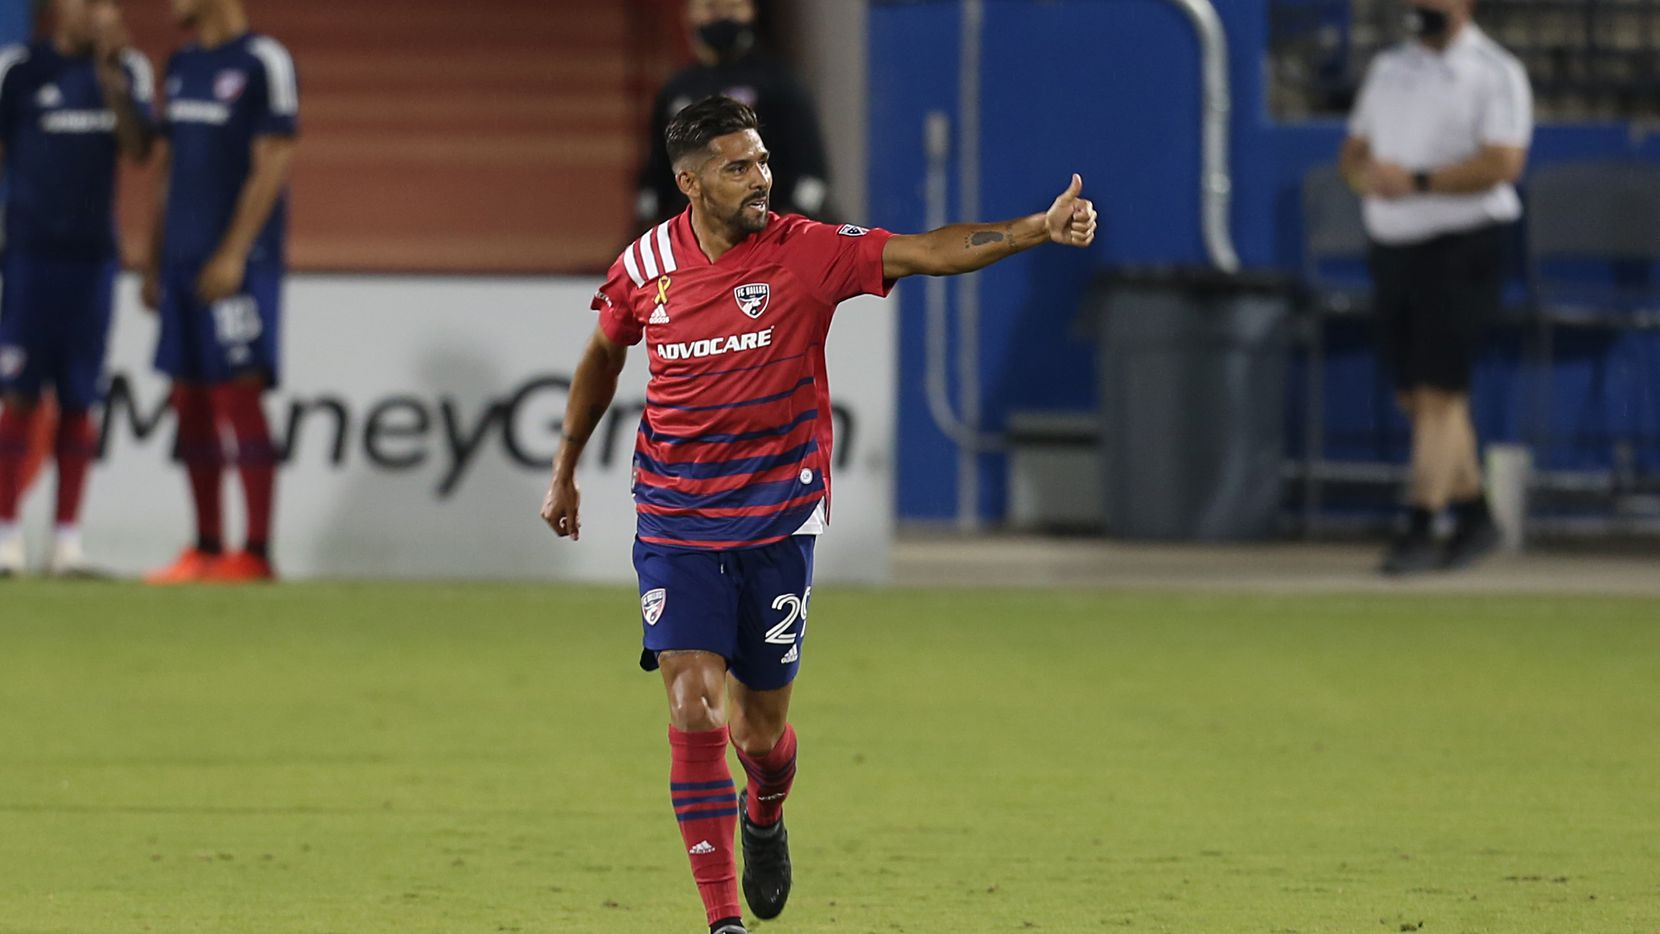 FRISCO, TX - SEPTEMBER 16: Franco Jara #29 of FC Dallas celebrates after scores 2nd goal for his team during the MLS game between FC Dallas and Colorado Rapids at Toyota Stadium. Santiago Mosquera hat trick lifts FC Dallas over the Colorado Rapids 4-1.